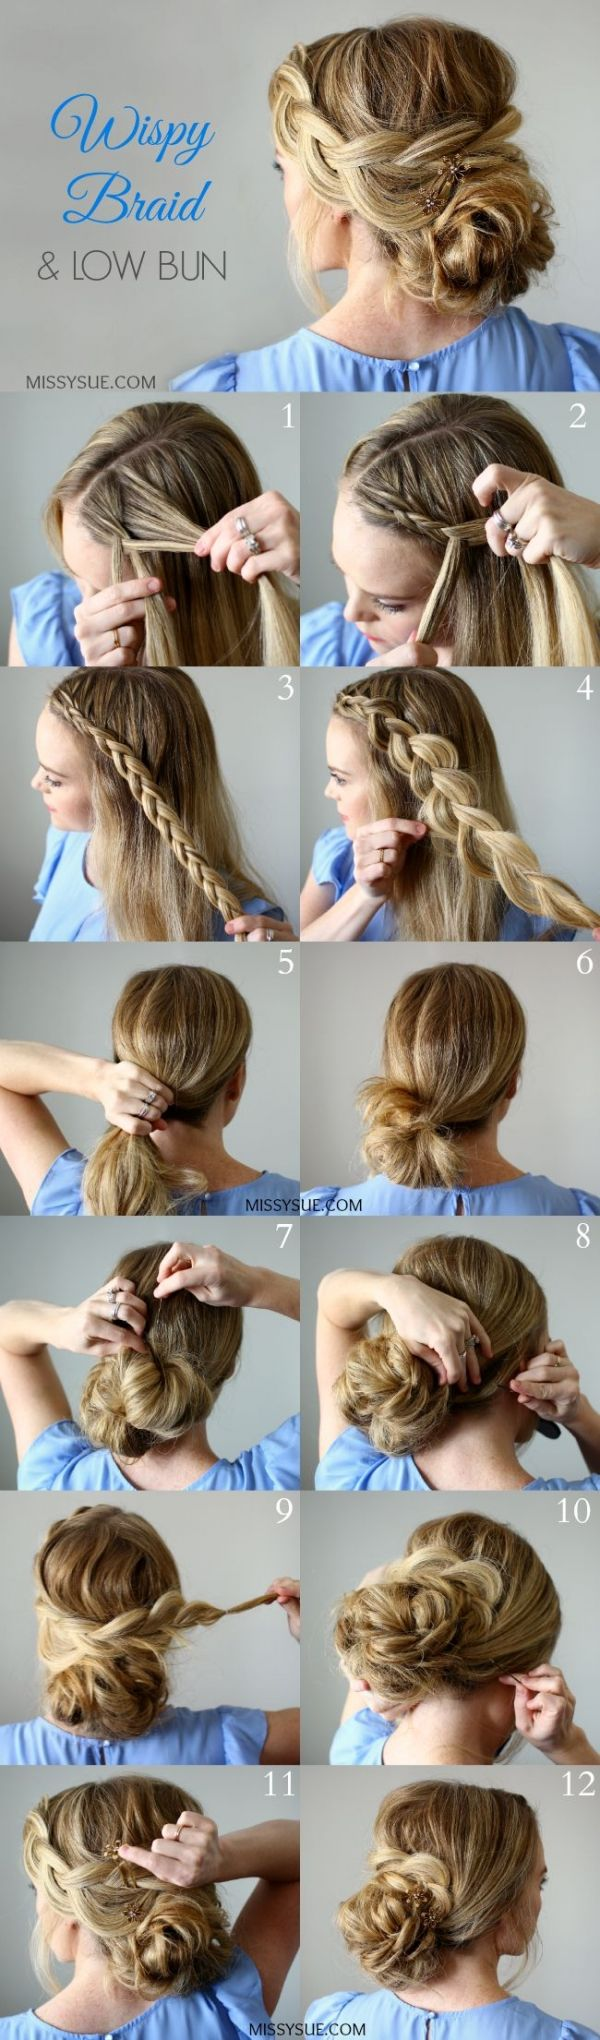 Fios braid and low bun hair pinterest low buns hair style and